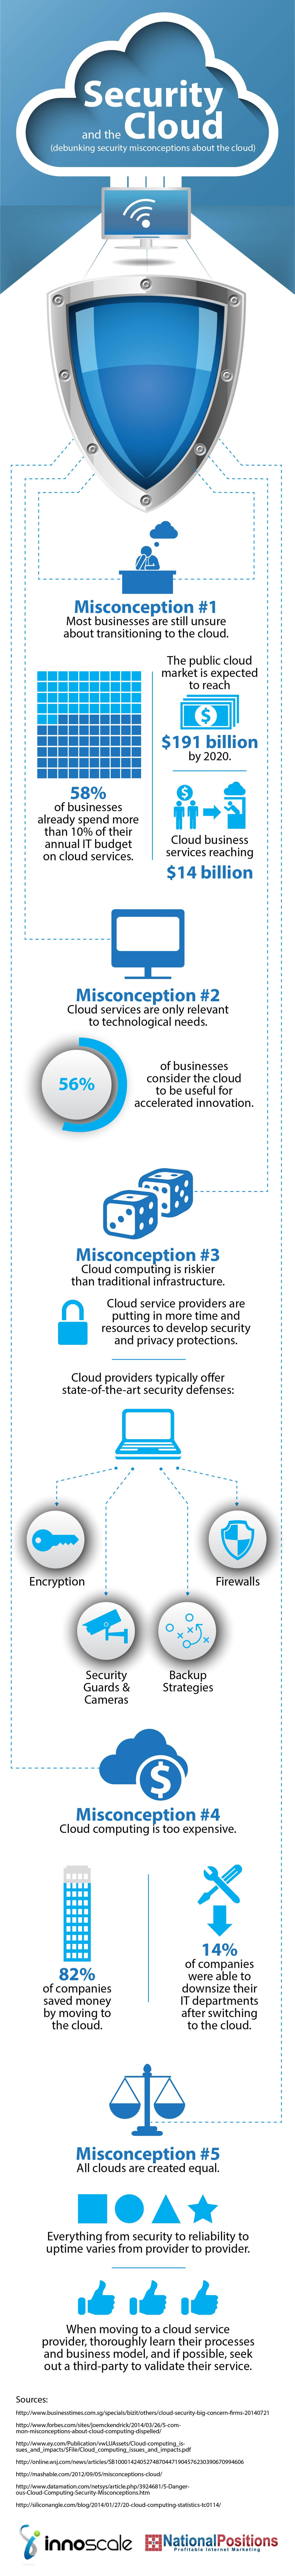 Security and the Cloud Infographic